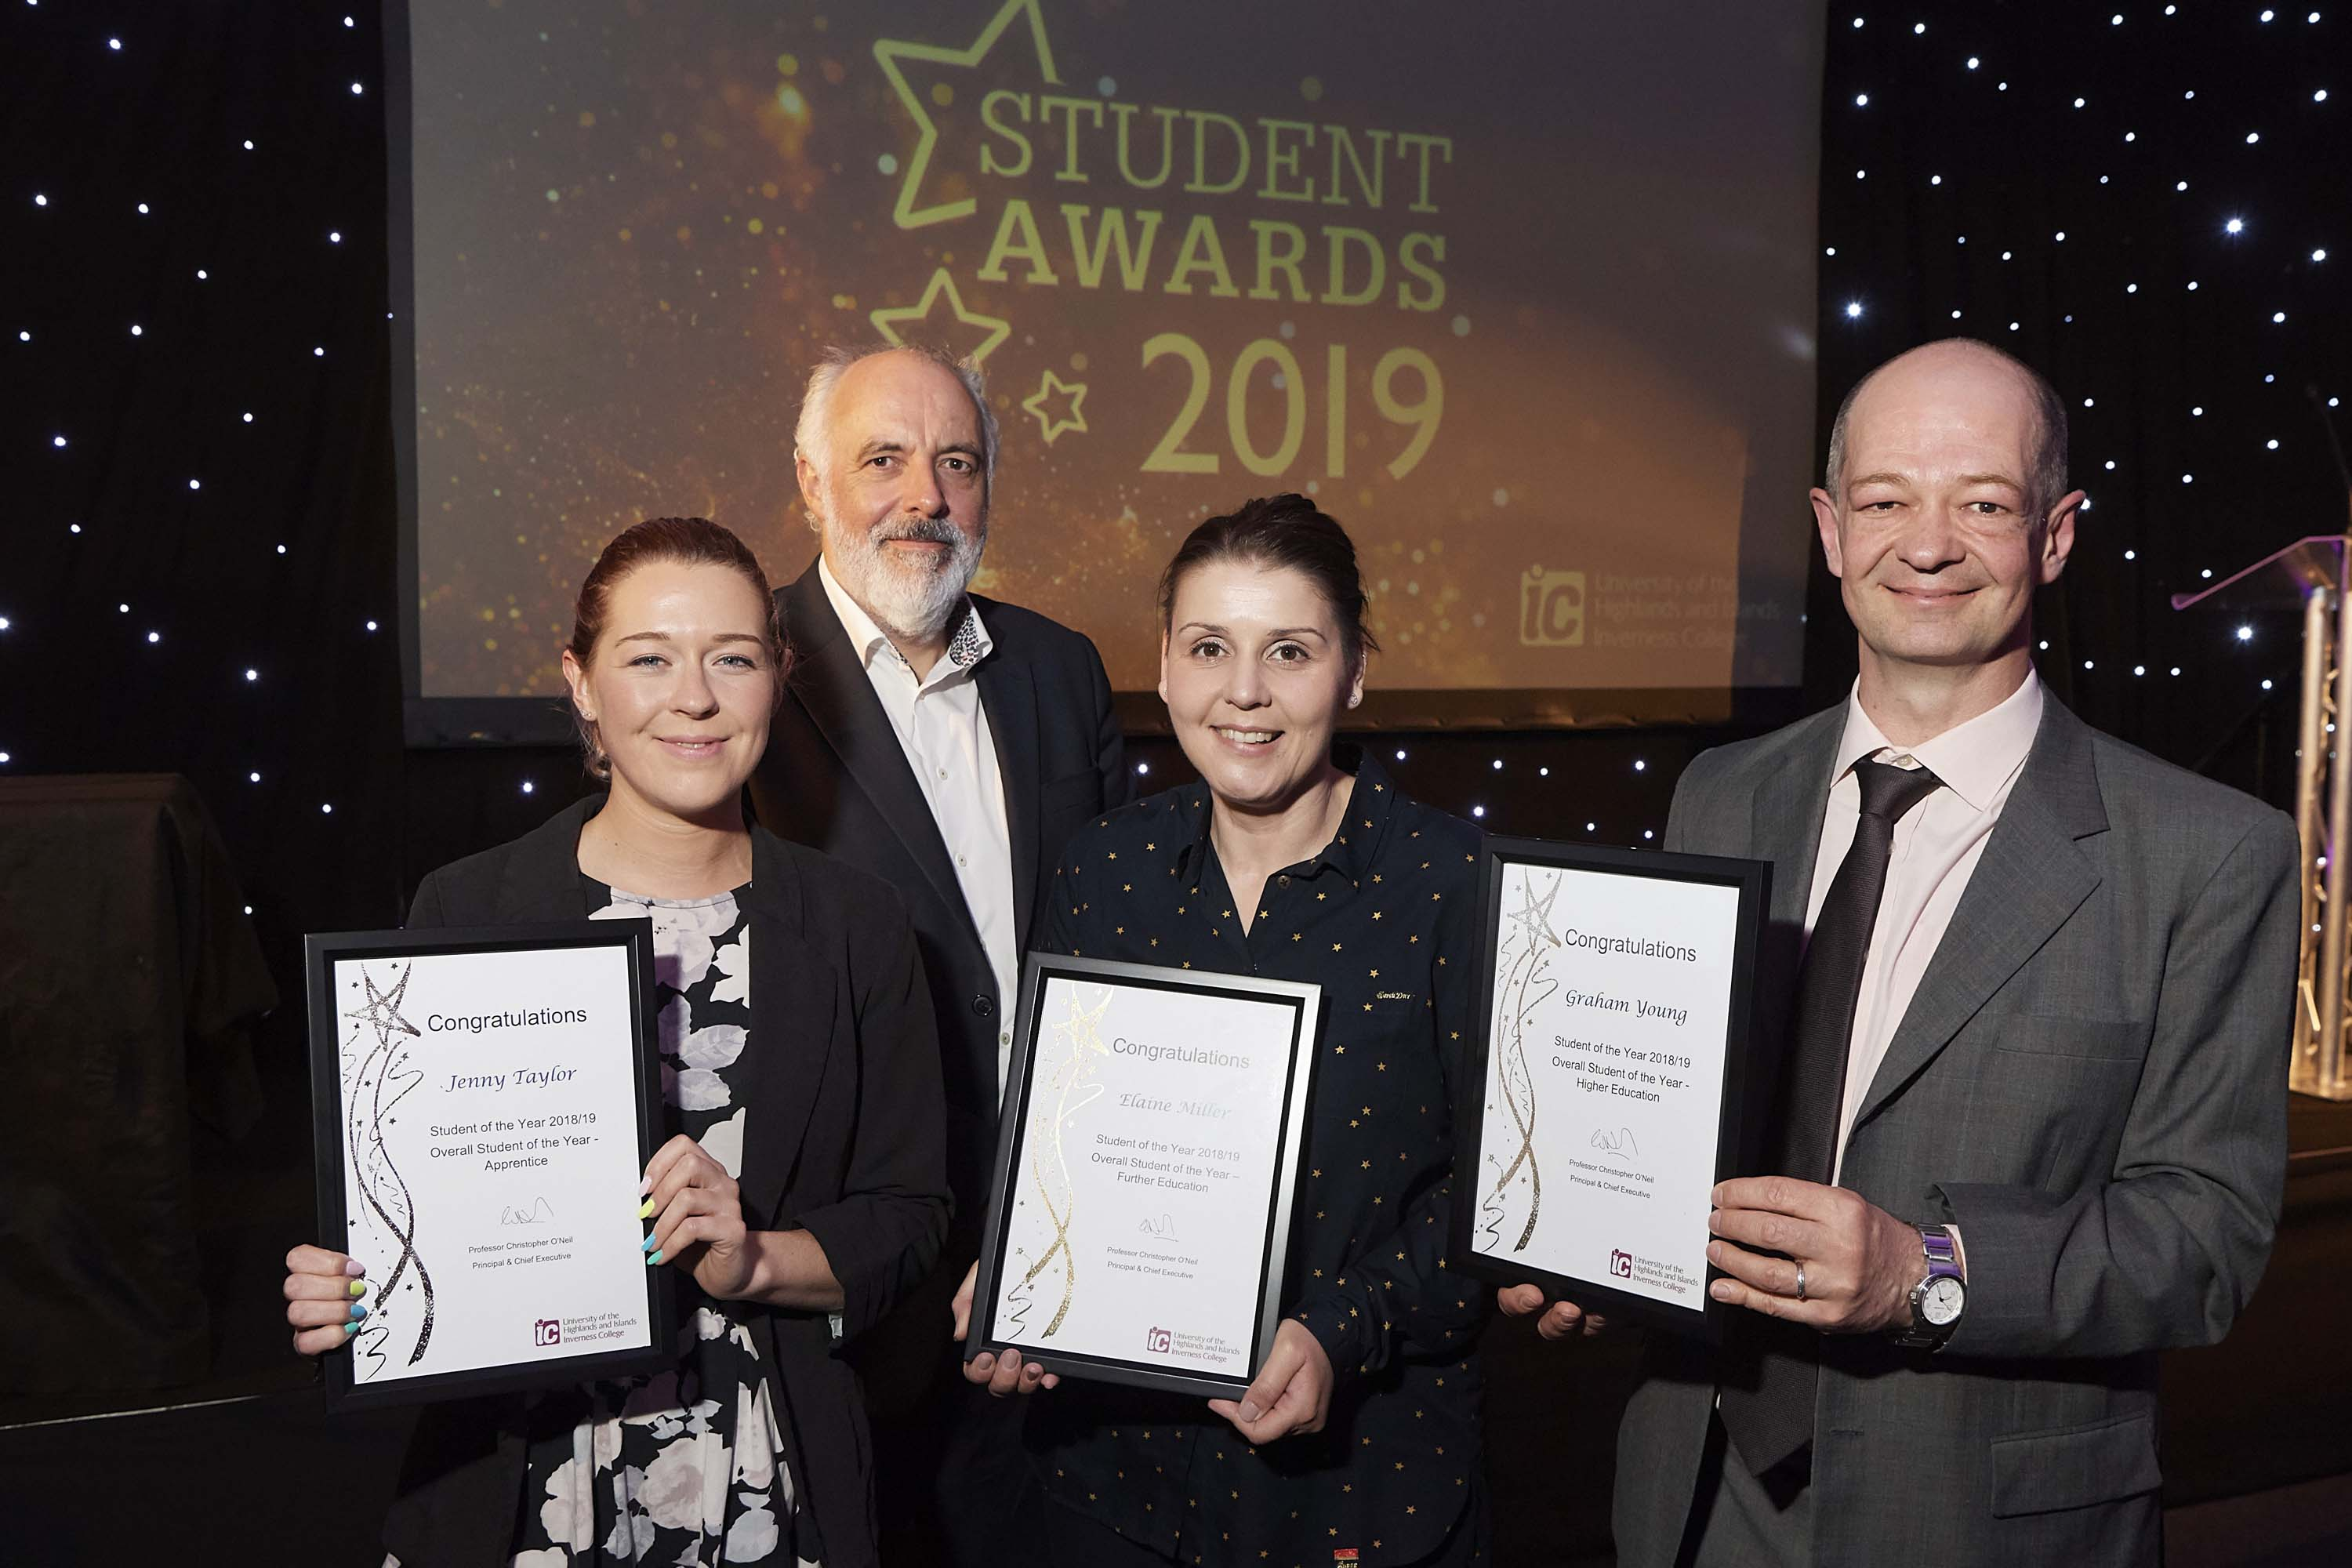 Inverness College UHI hosts annual student awards ceremony